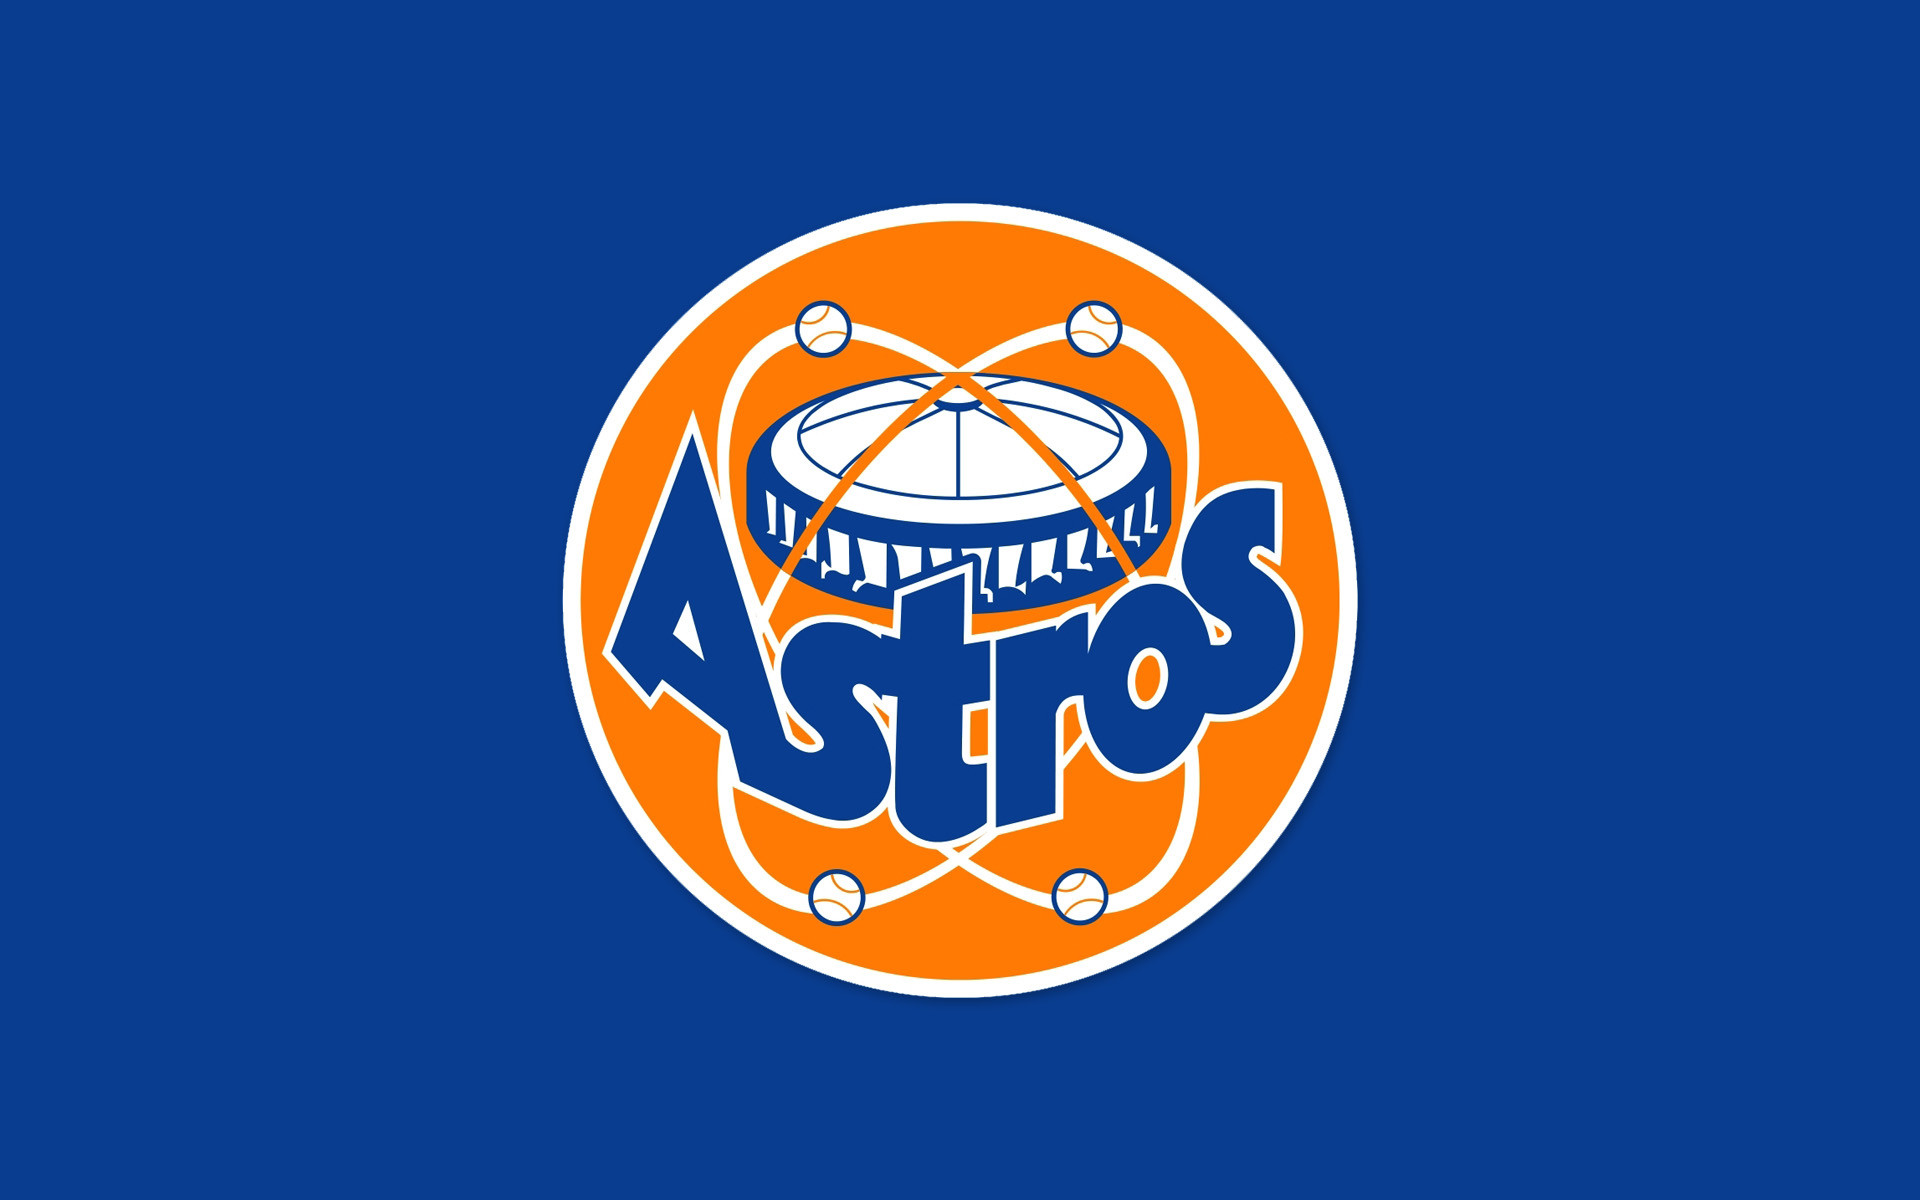 Houston Astros Wallpapers, High Resolution Images